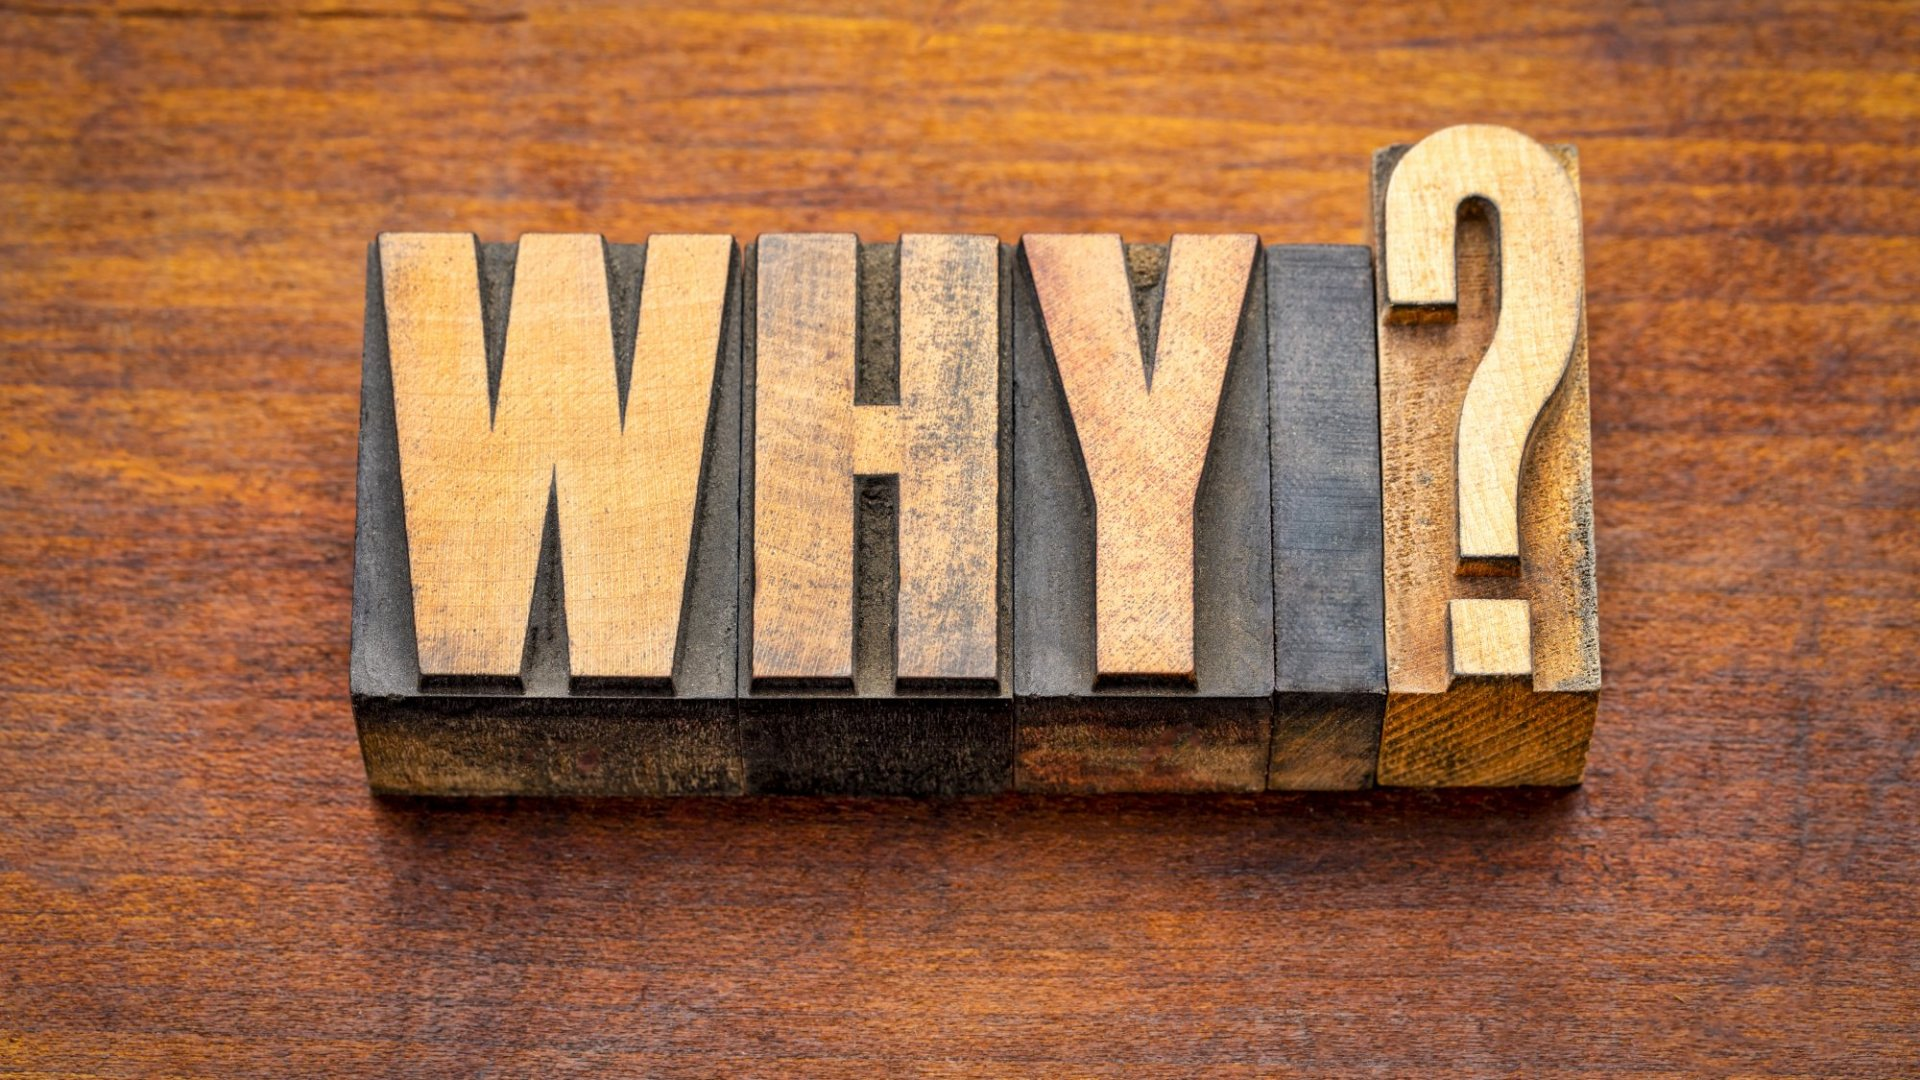 The 5 Whys: A Secret Technique to Get to the Bottom of Any Issue